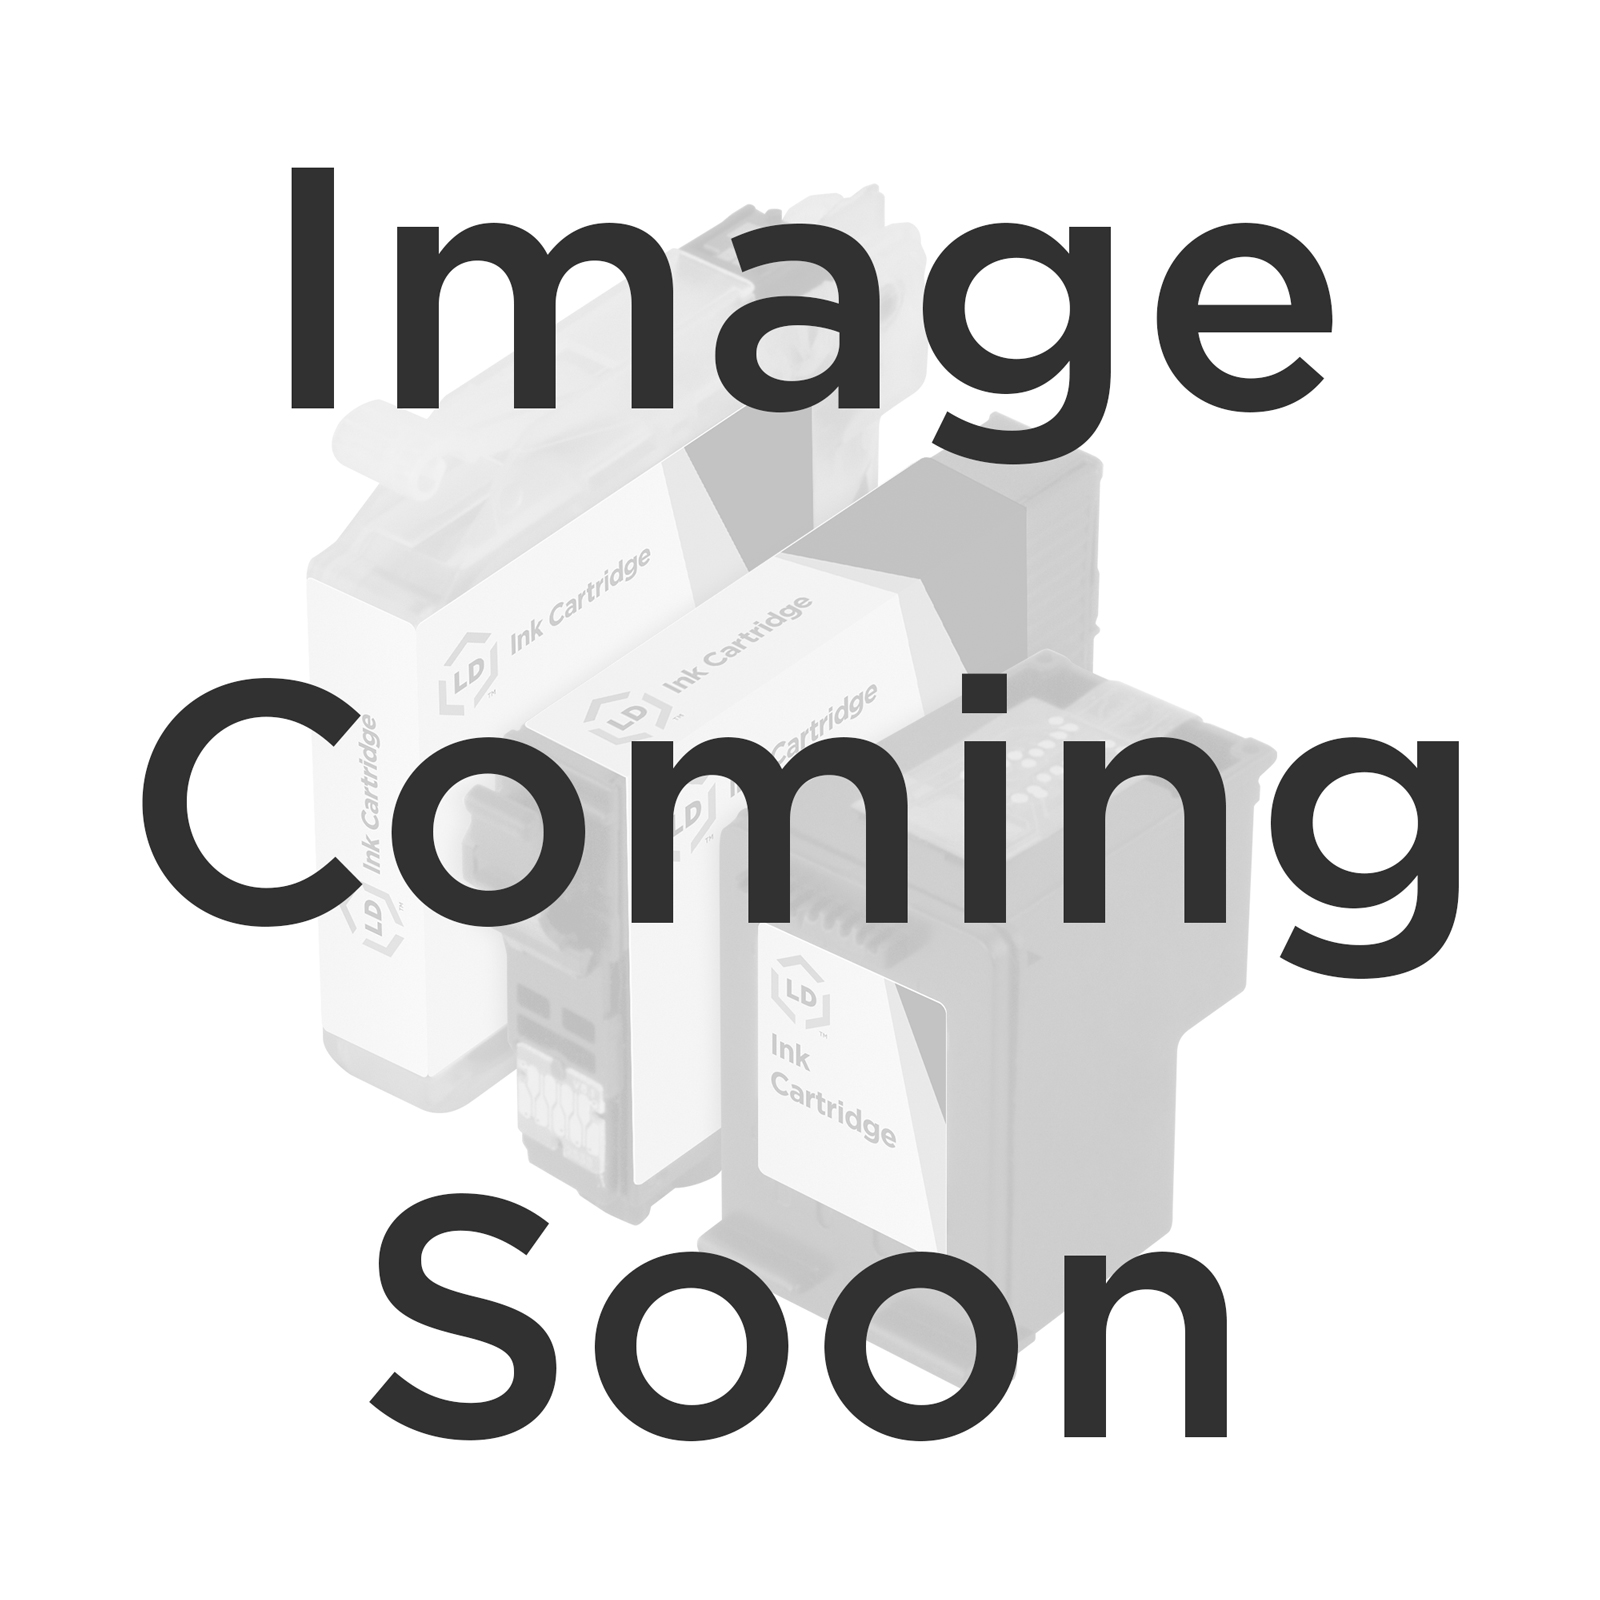 Merriam-Webster Paperback Thesaurus Dictionary Companion Dictionary Printed Book - English